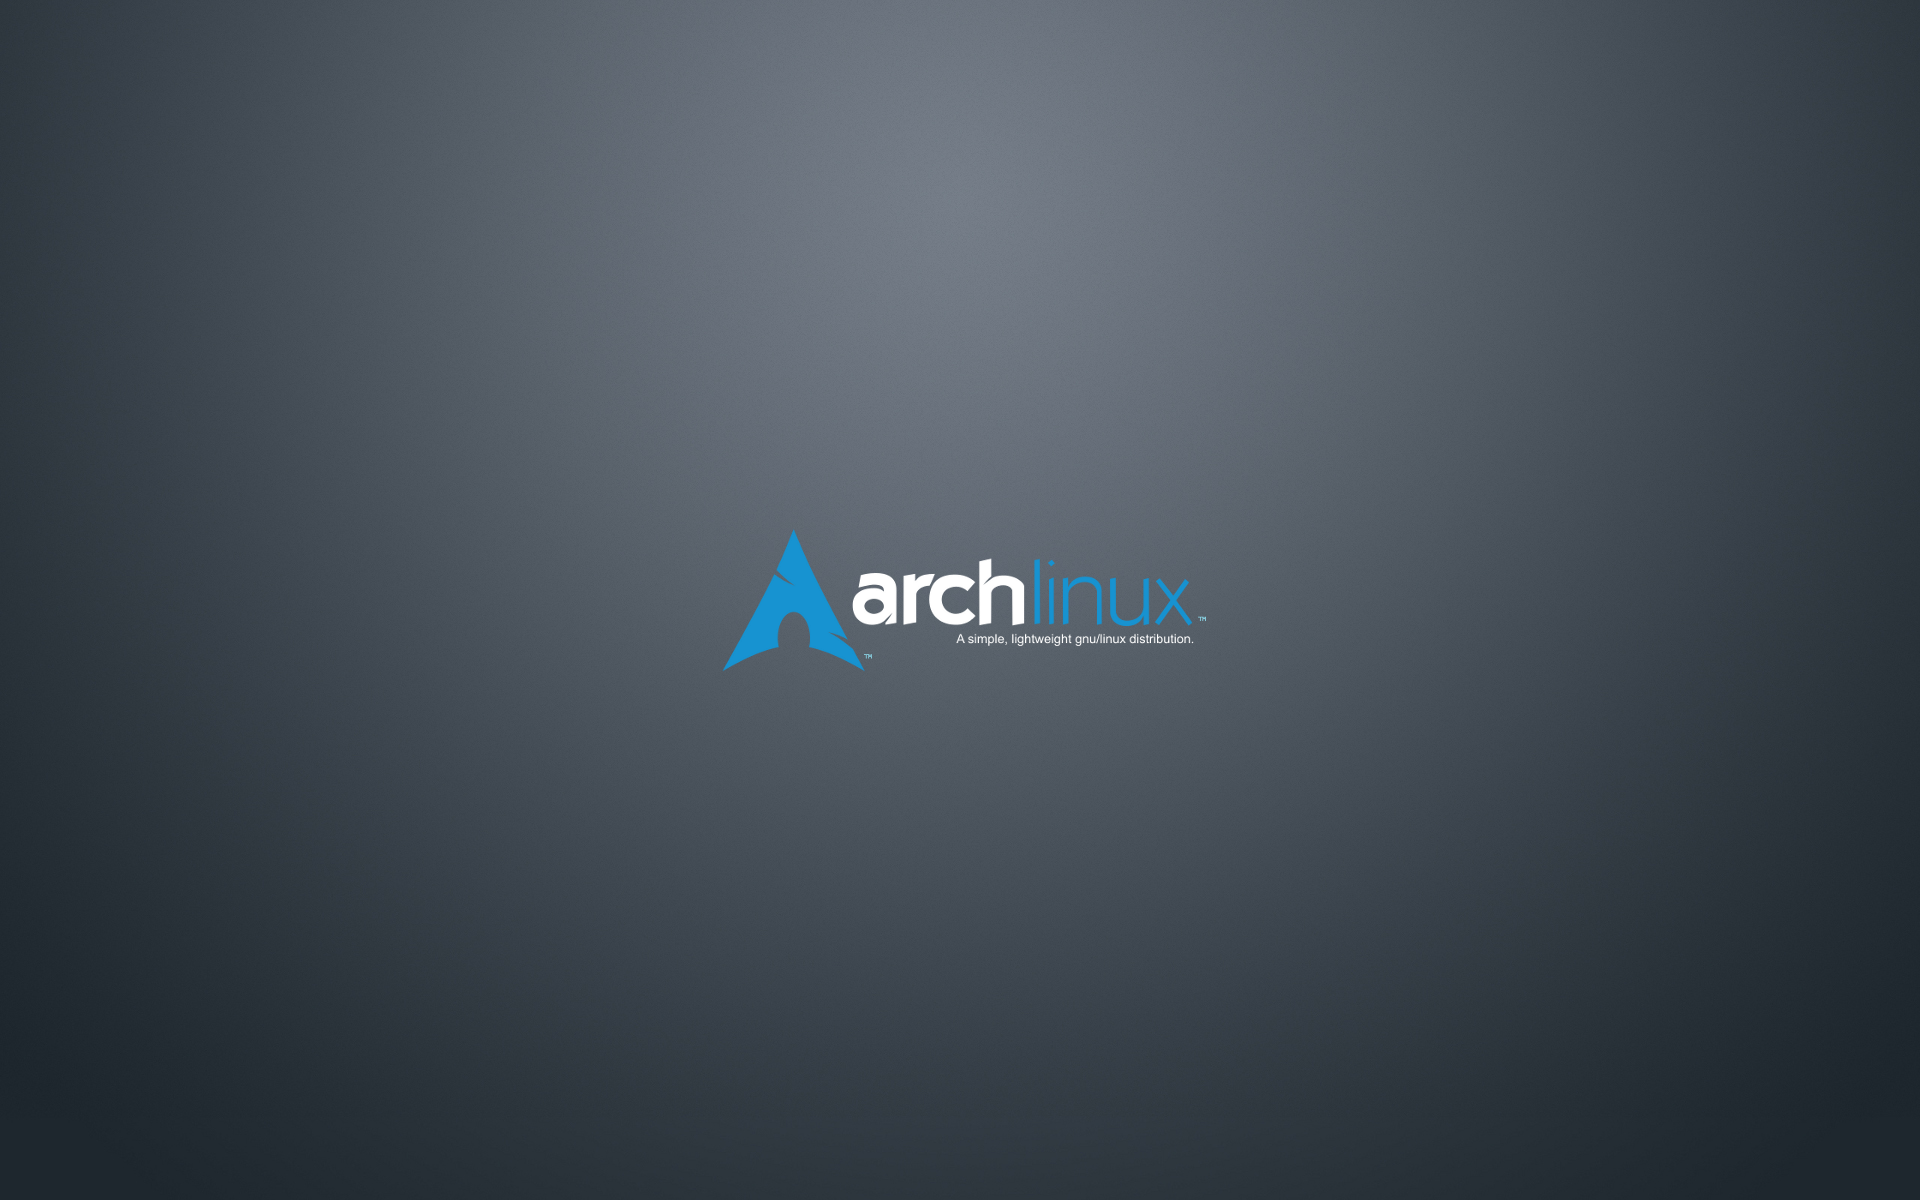 Arch 1920x1200 px - High Resolution Wallpapers